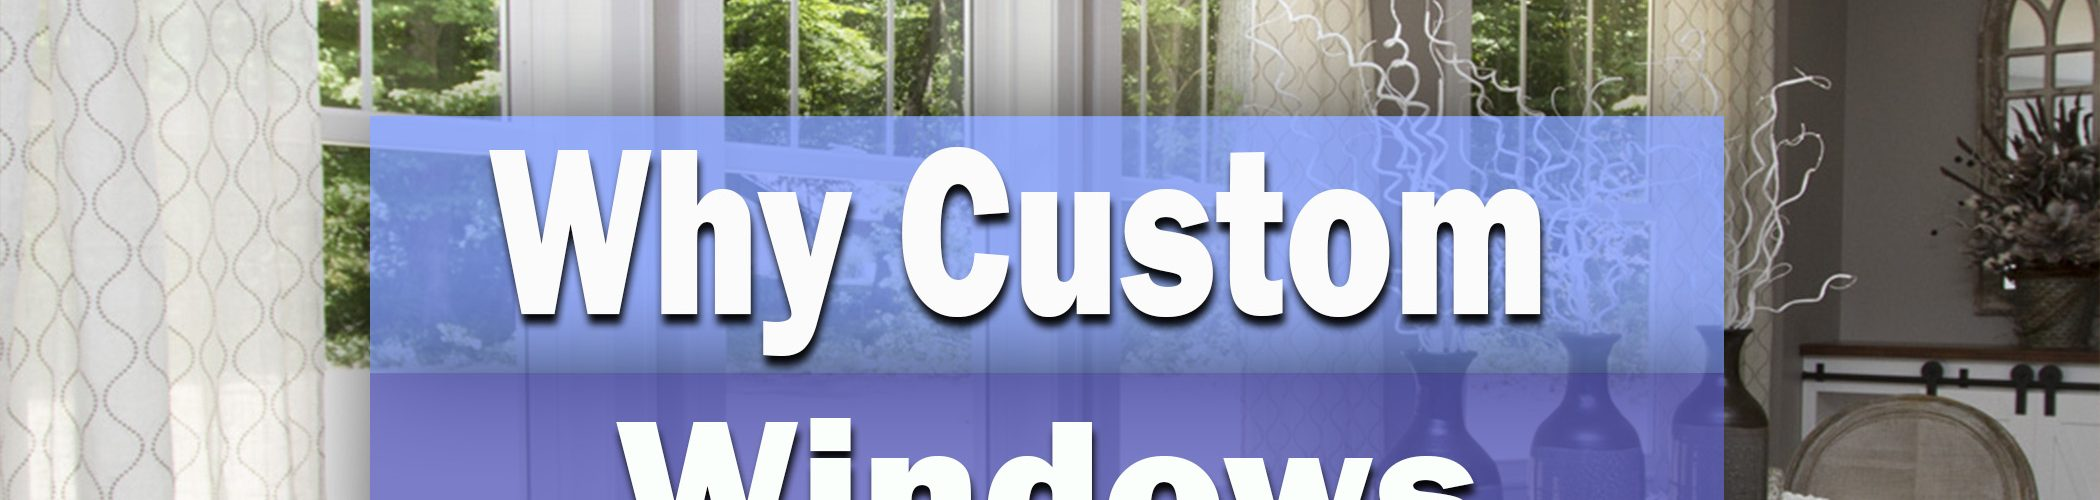 Top Reasons Why Custom Windows Are Best For You